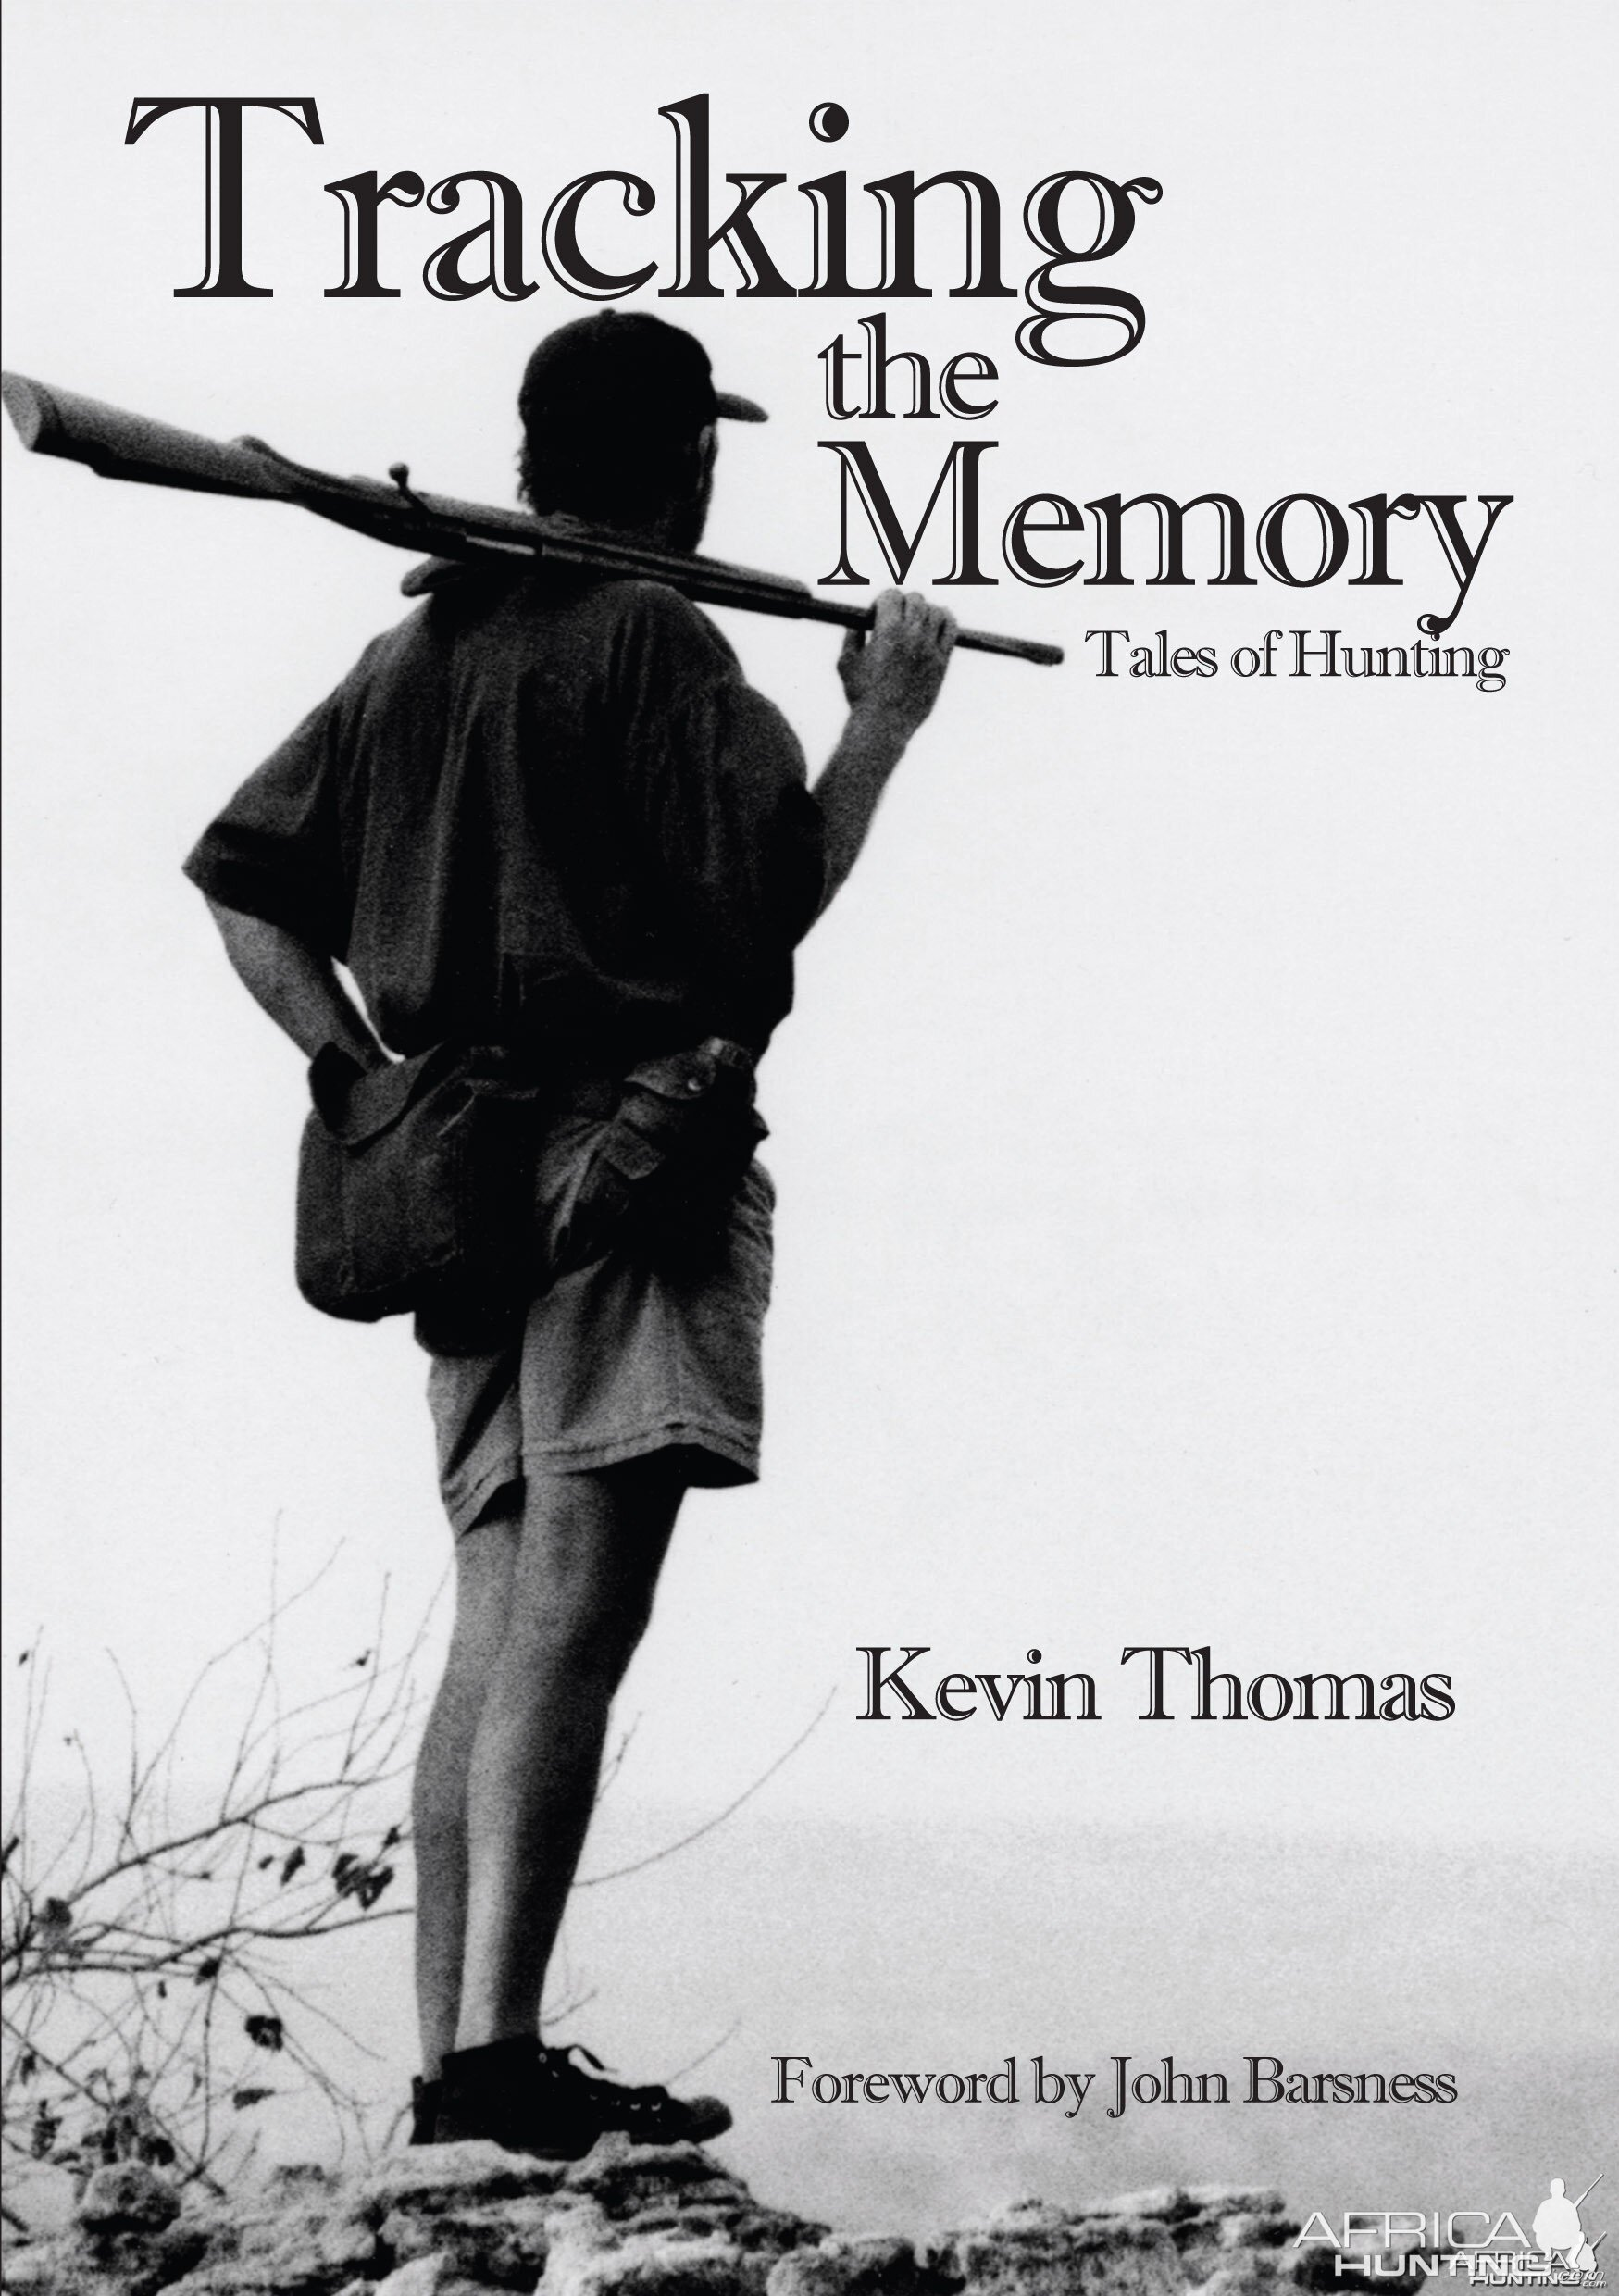 Tracking the Memory - Tales of Hunting